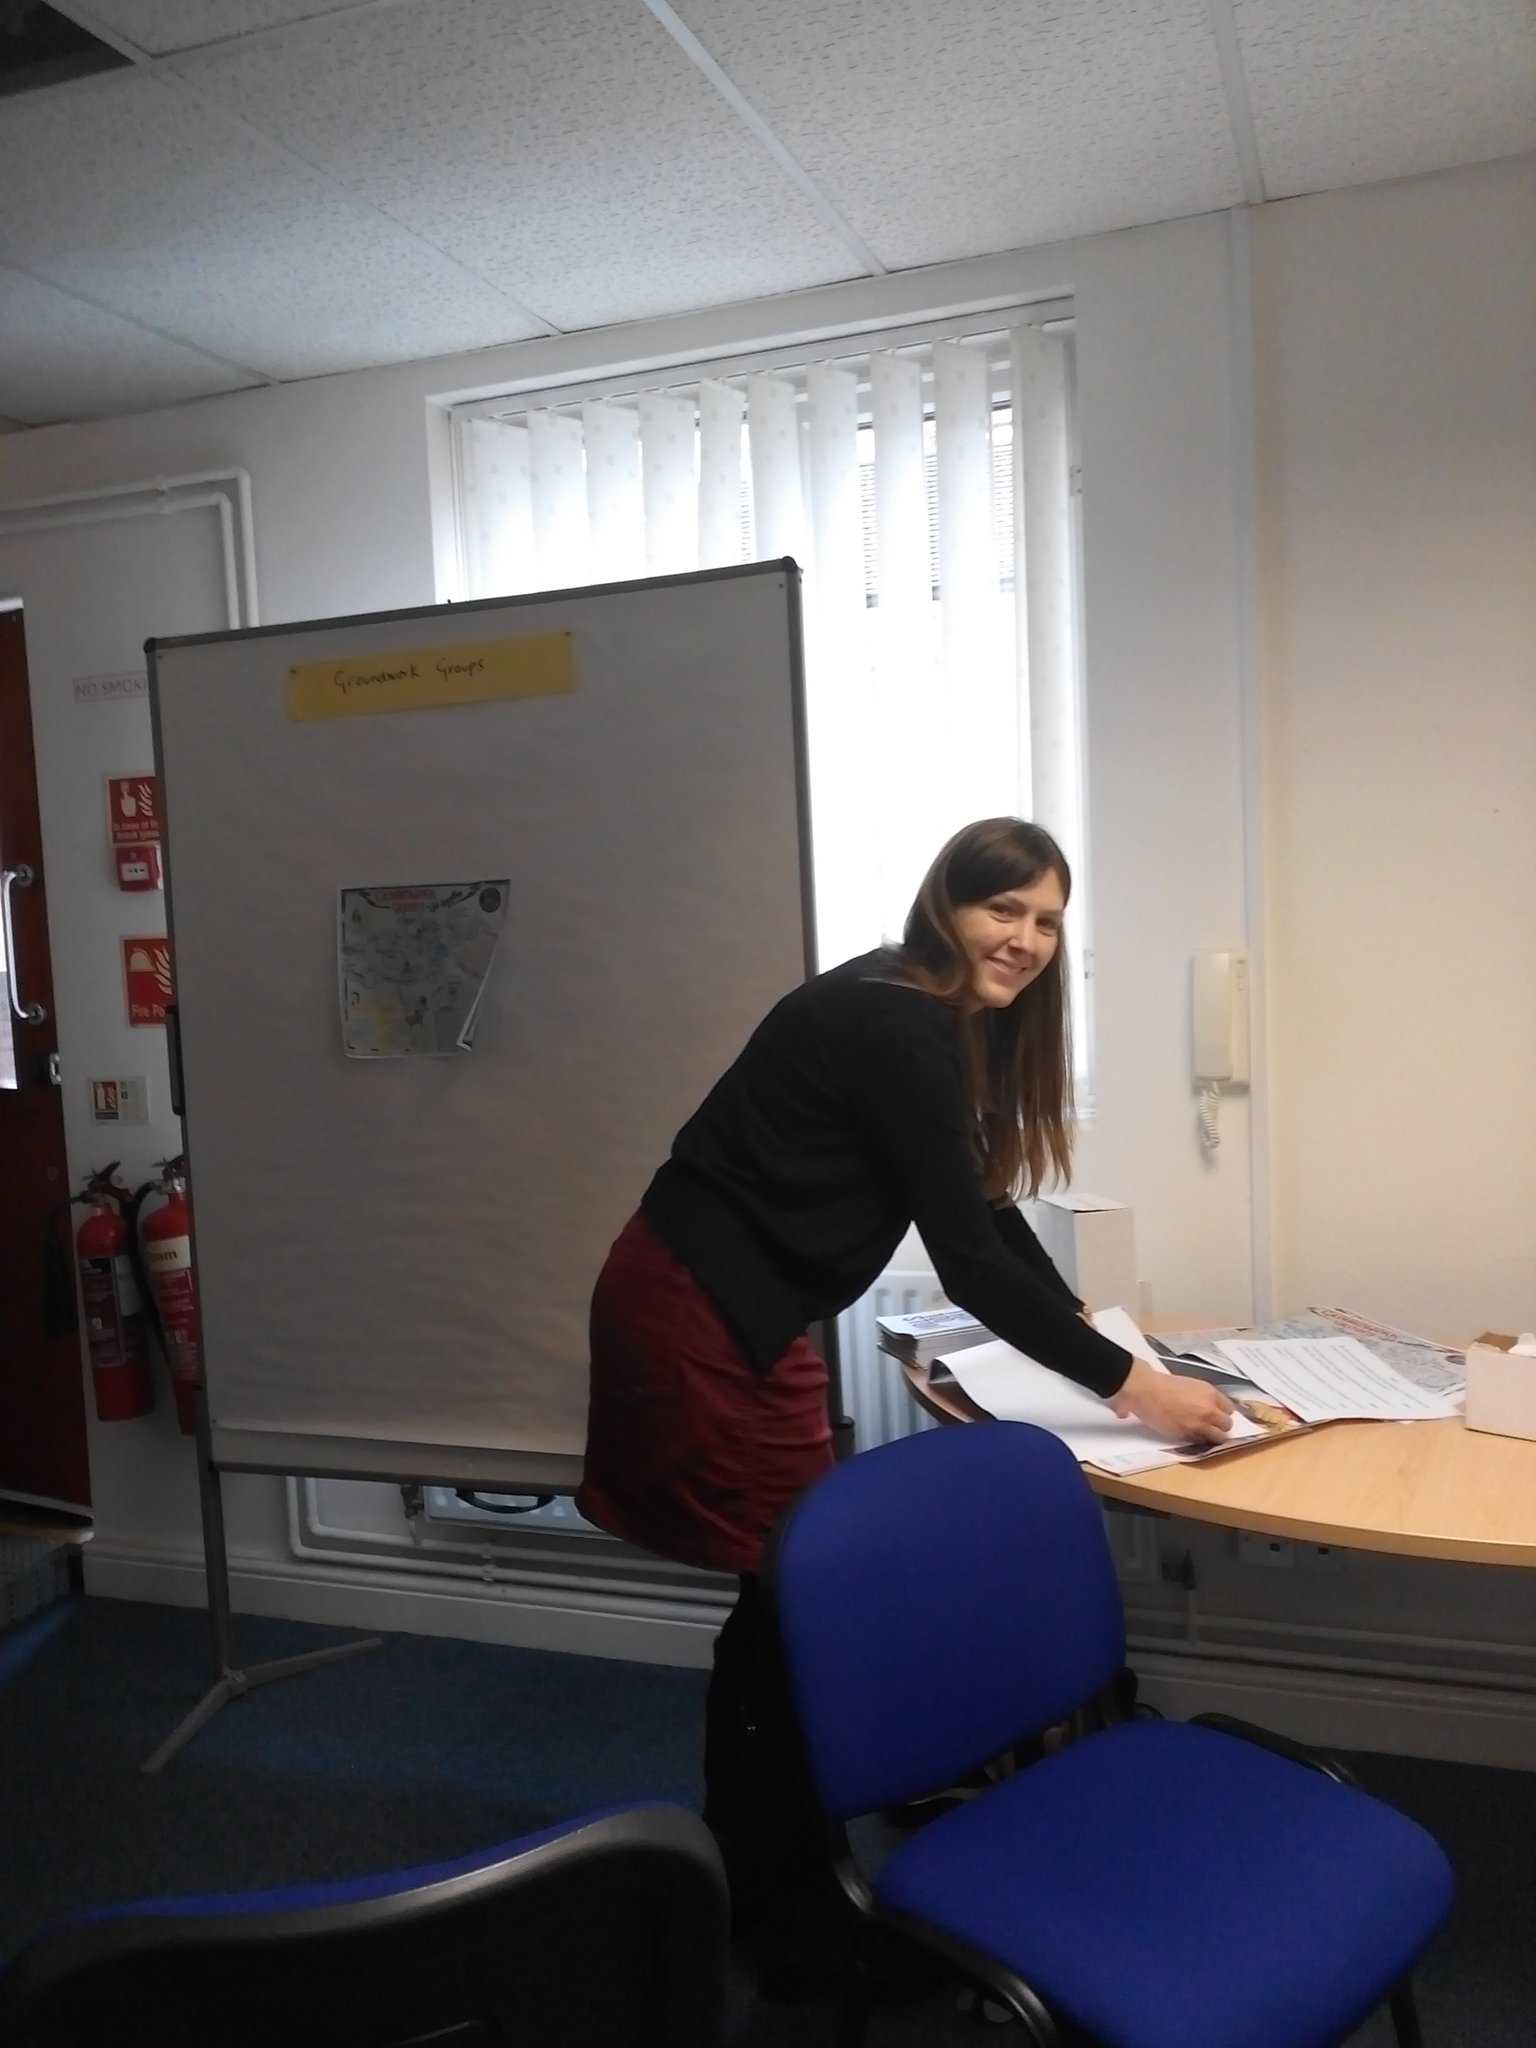 Rosalind @CreativeBCuk  preparing for today's #ourplace event. Welcome to @WolvesVSC! https://t.co/NE8dsWp1v0